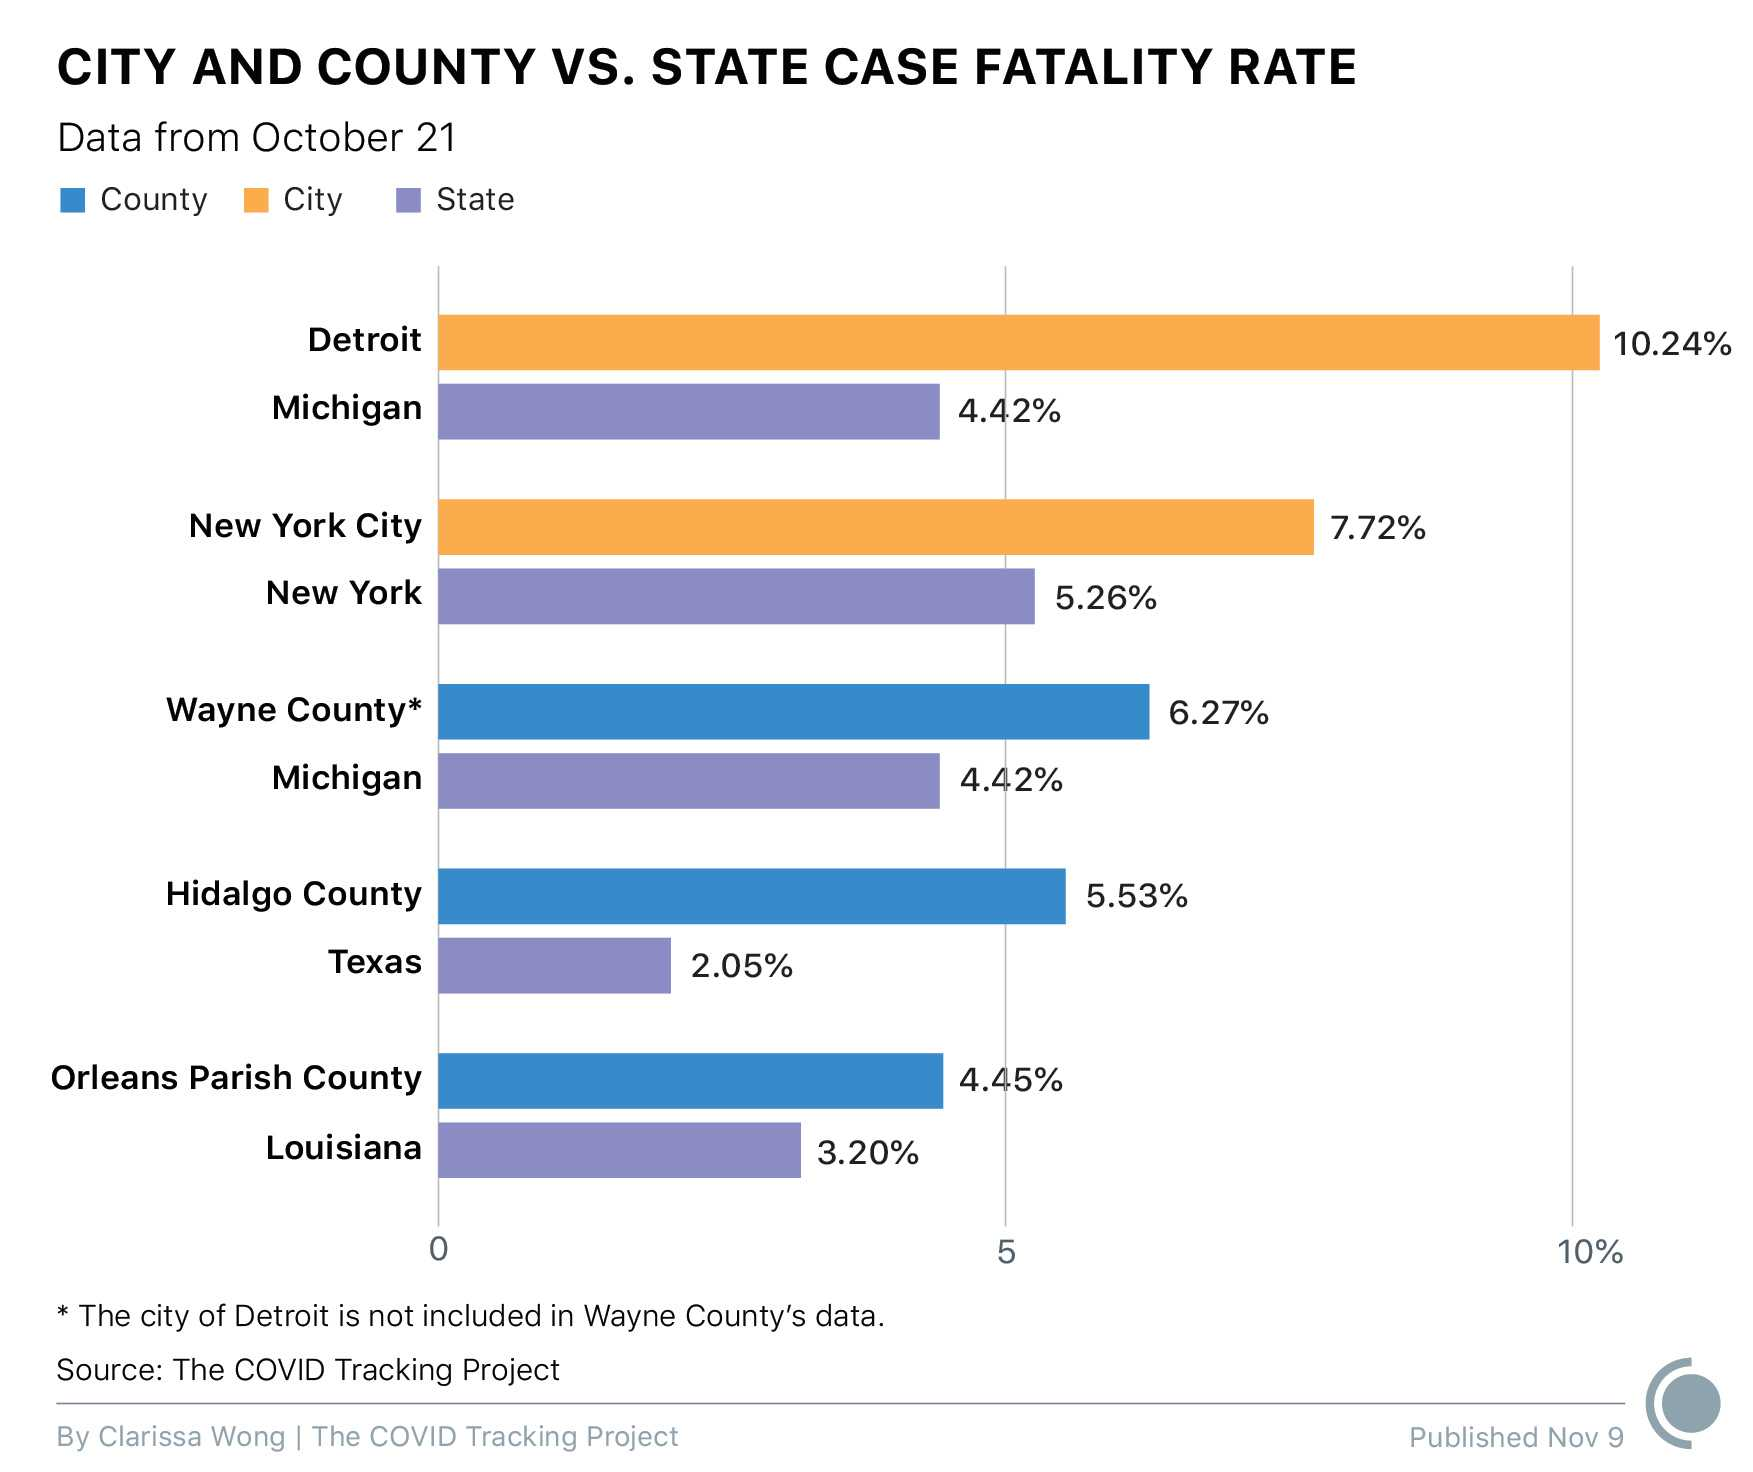 A double bar graph compares the case fatality rate of metropolitan areas (cities and counties) and the states they are located within. All data is as of October 21. The following locations are compared: Detroit vs. Michigan; New York City vs. New York; Wayne County (excluding Detroit) vs. Michigan); Hidalgo County vs. Texas; and Orleans Parish vs. Louisiana. For all locations examined, the cities and counties experience a higher case fatality rate than states they are located in.